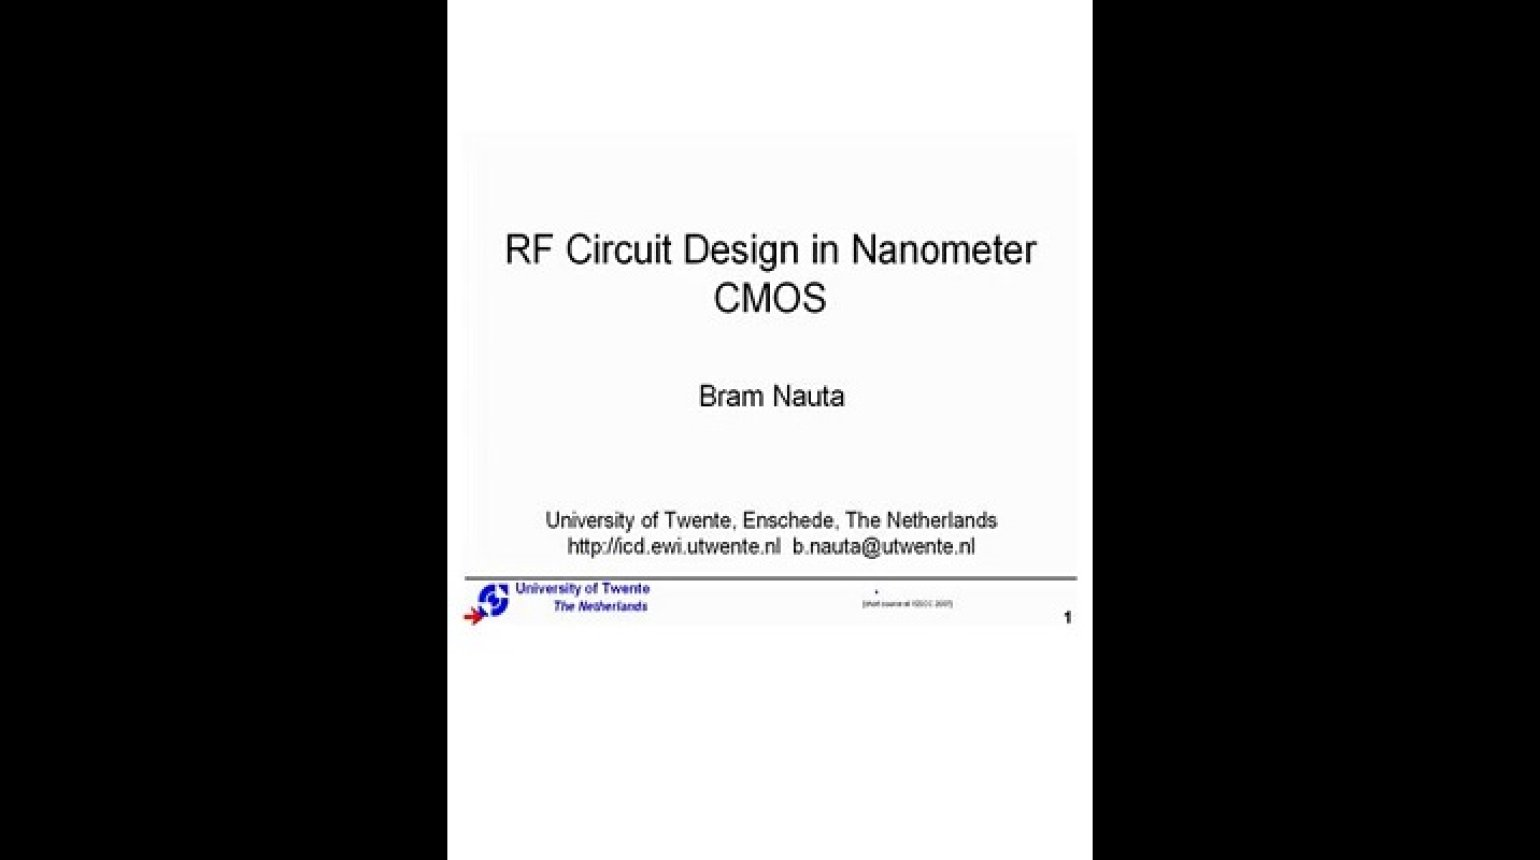 RF Circuit Design in Nanometer CMOS Video